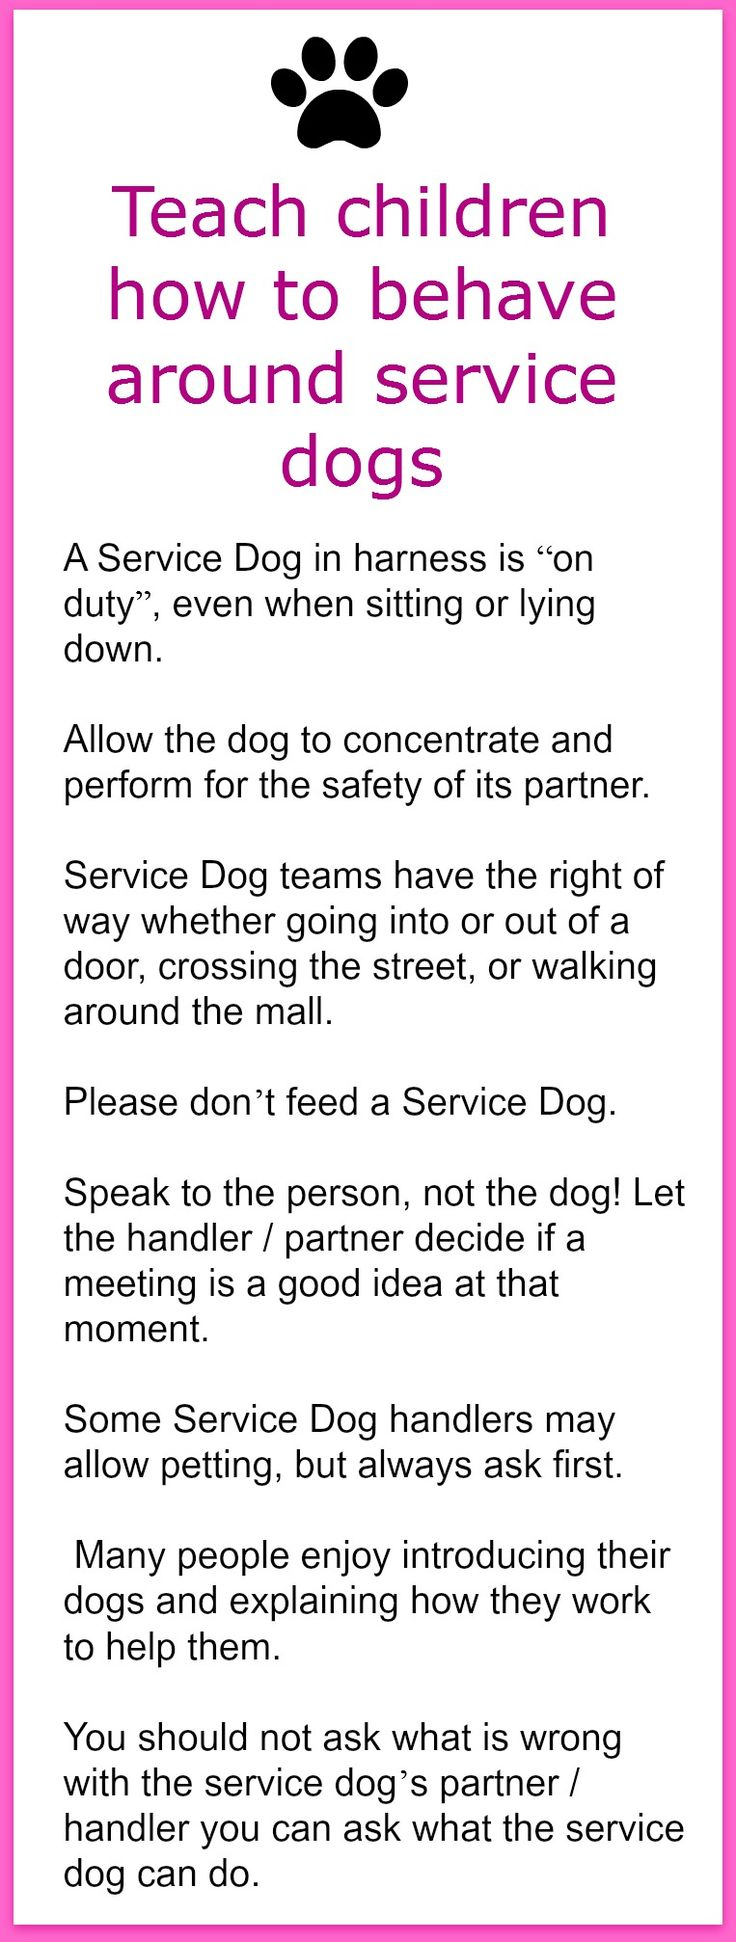 Pet Safety - Service Dogs We have posted numerous times about Guide Dogs and Service Dogs. We have discussed how they allow adults and children to be more independent, live happier lives, and in so...